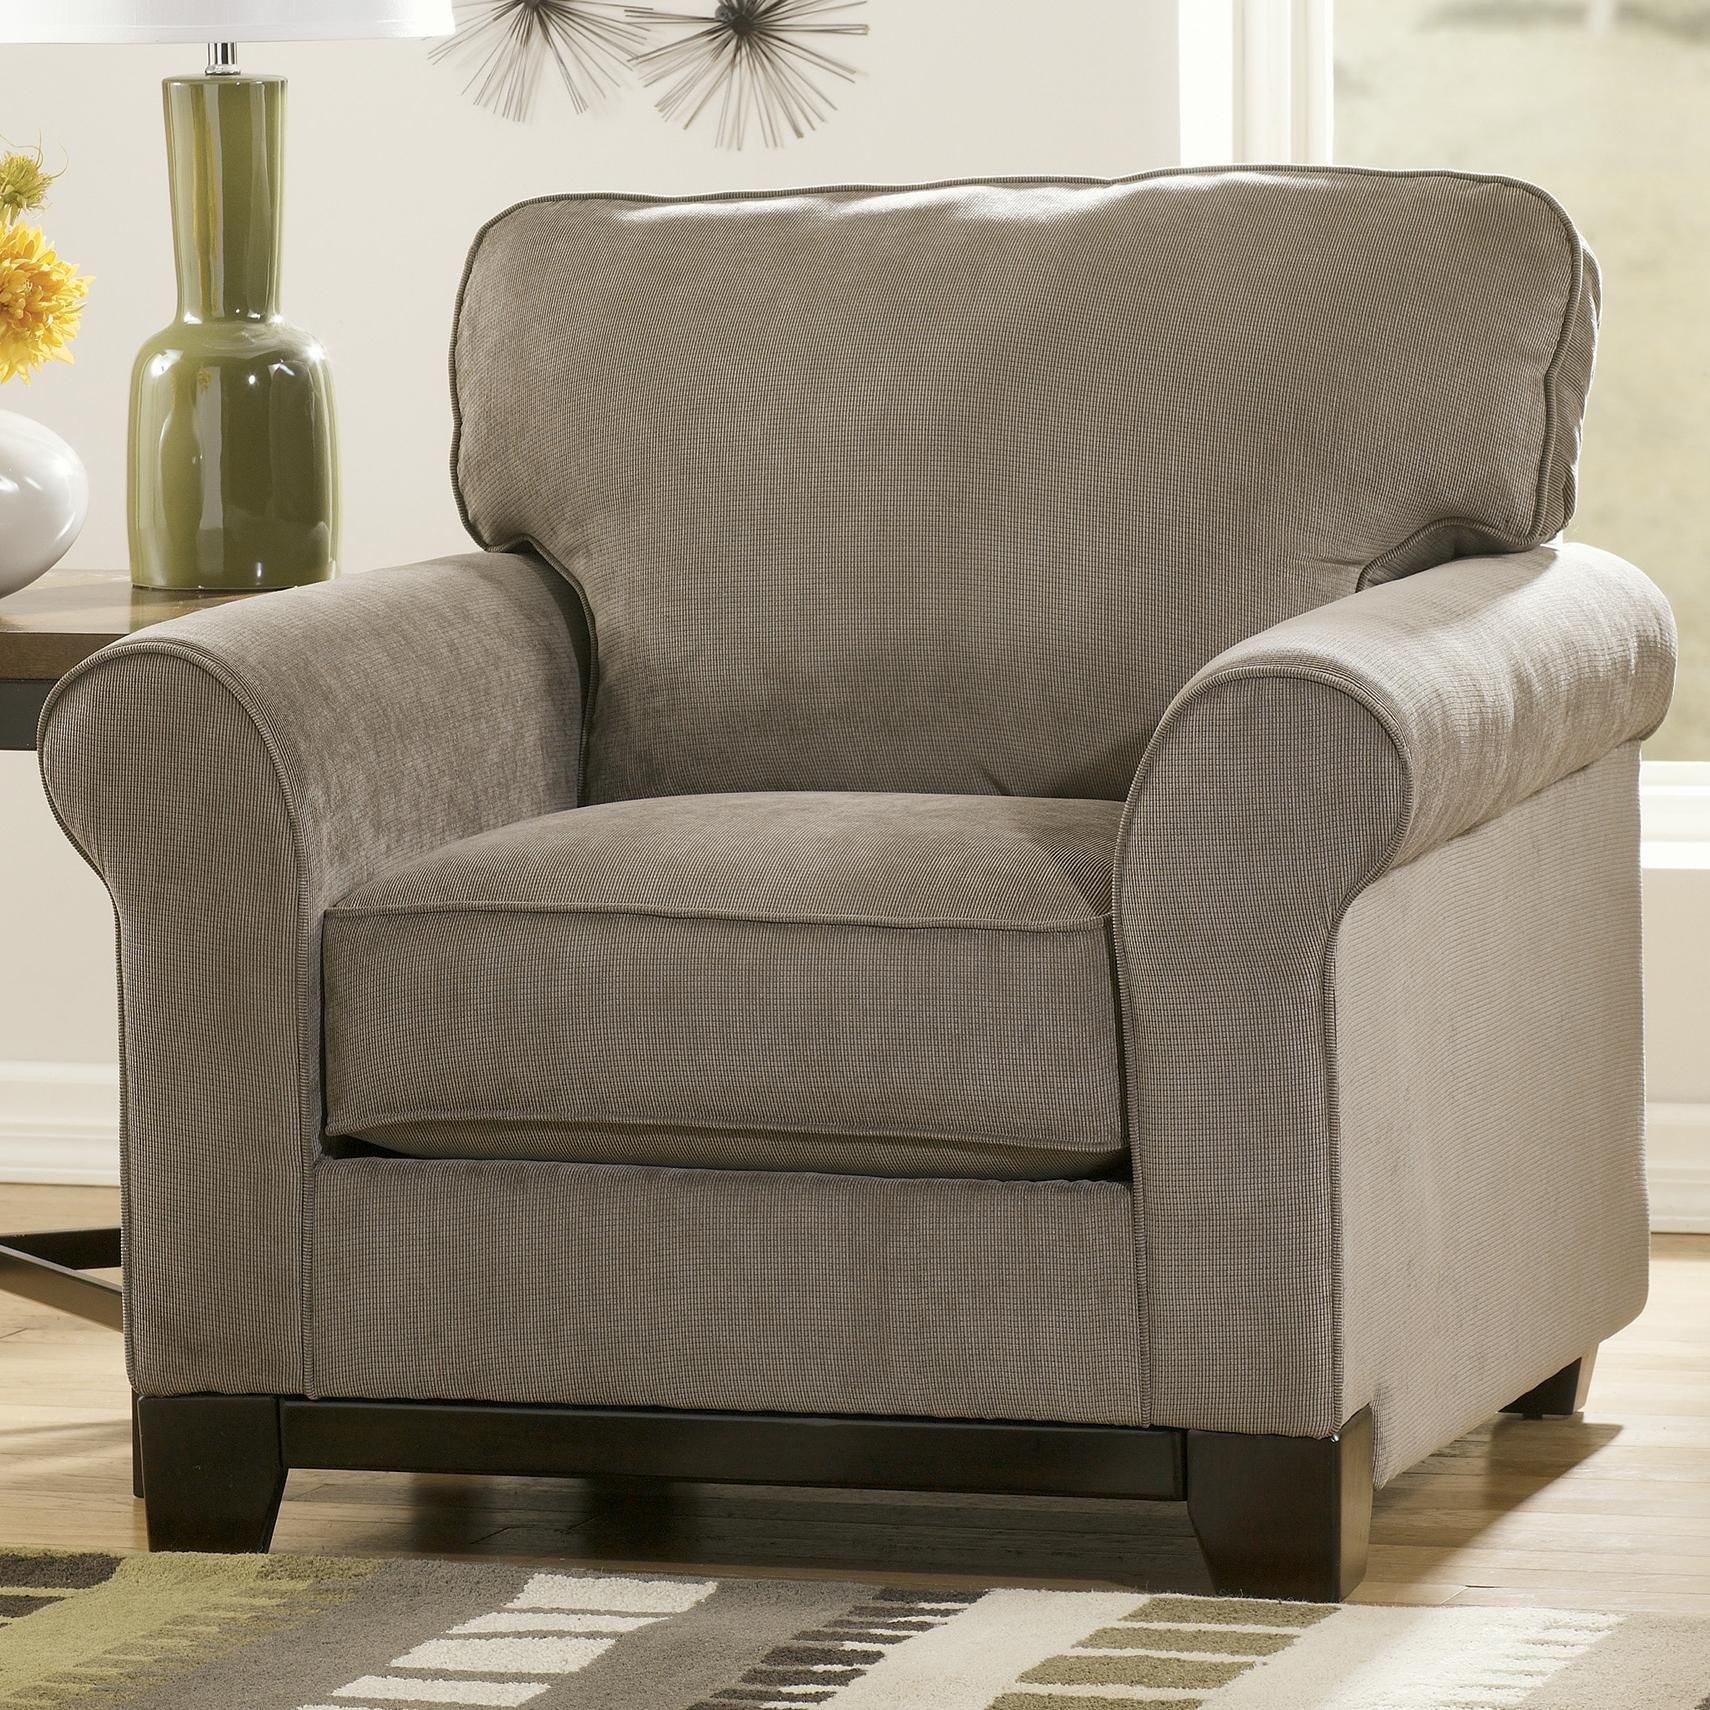 Signature Design By Ashley Riley   Slate Contemporary Upholstered Arm Chair    SuperStore   Upholstered Chair